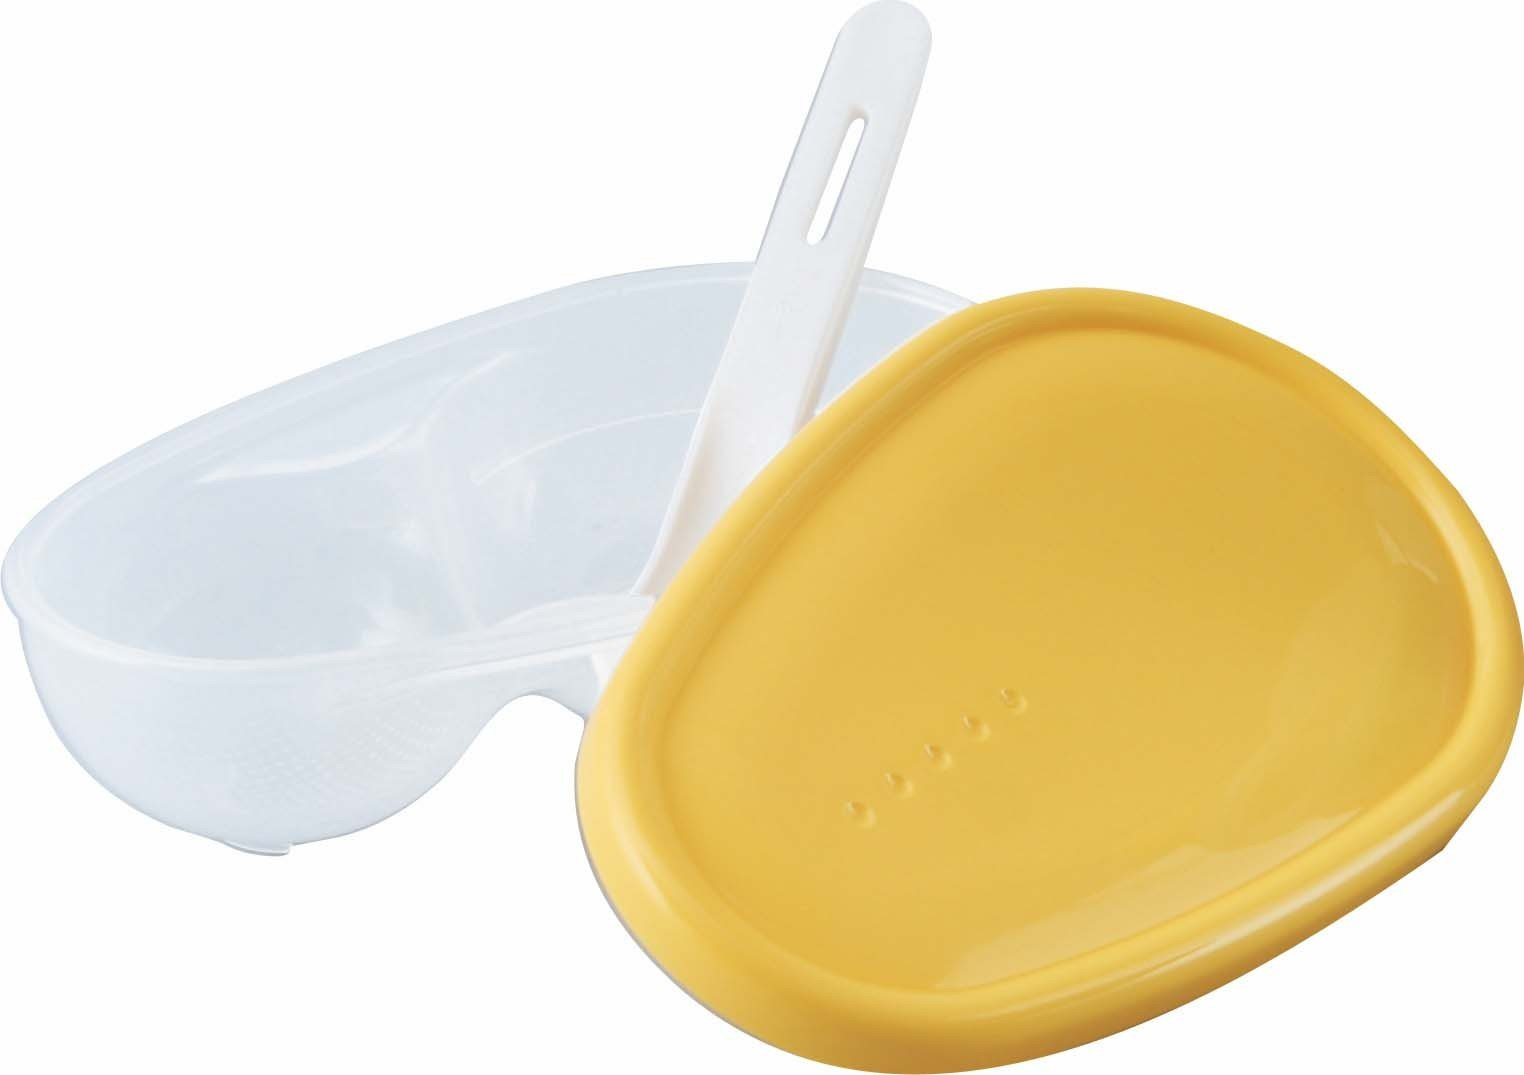 Pigeon Baby Feeding Dish Grinder Bowl with PP Spoon for 6 month+ BPA Free by Pigeon